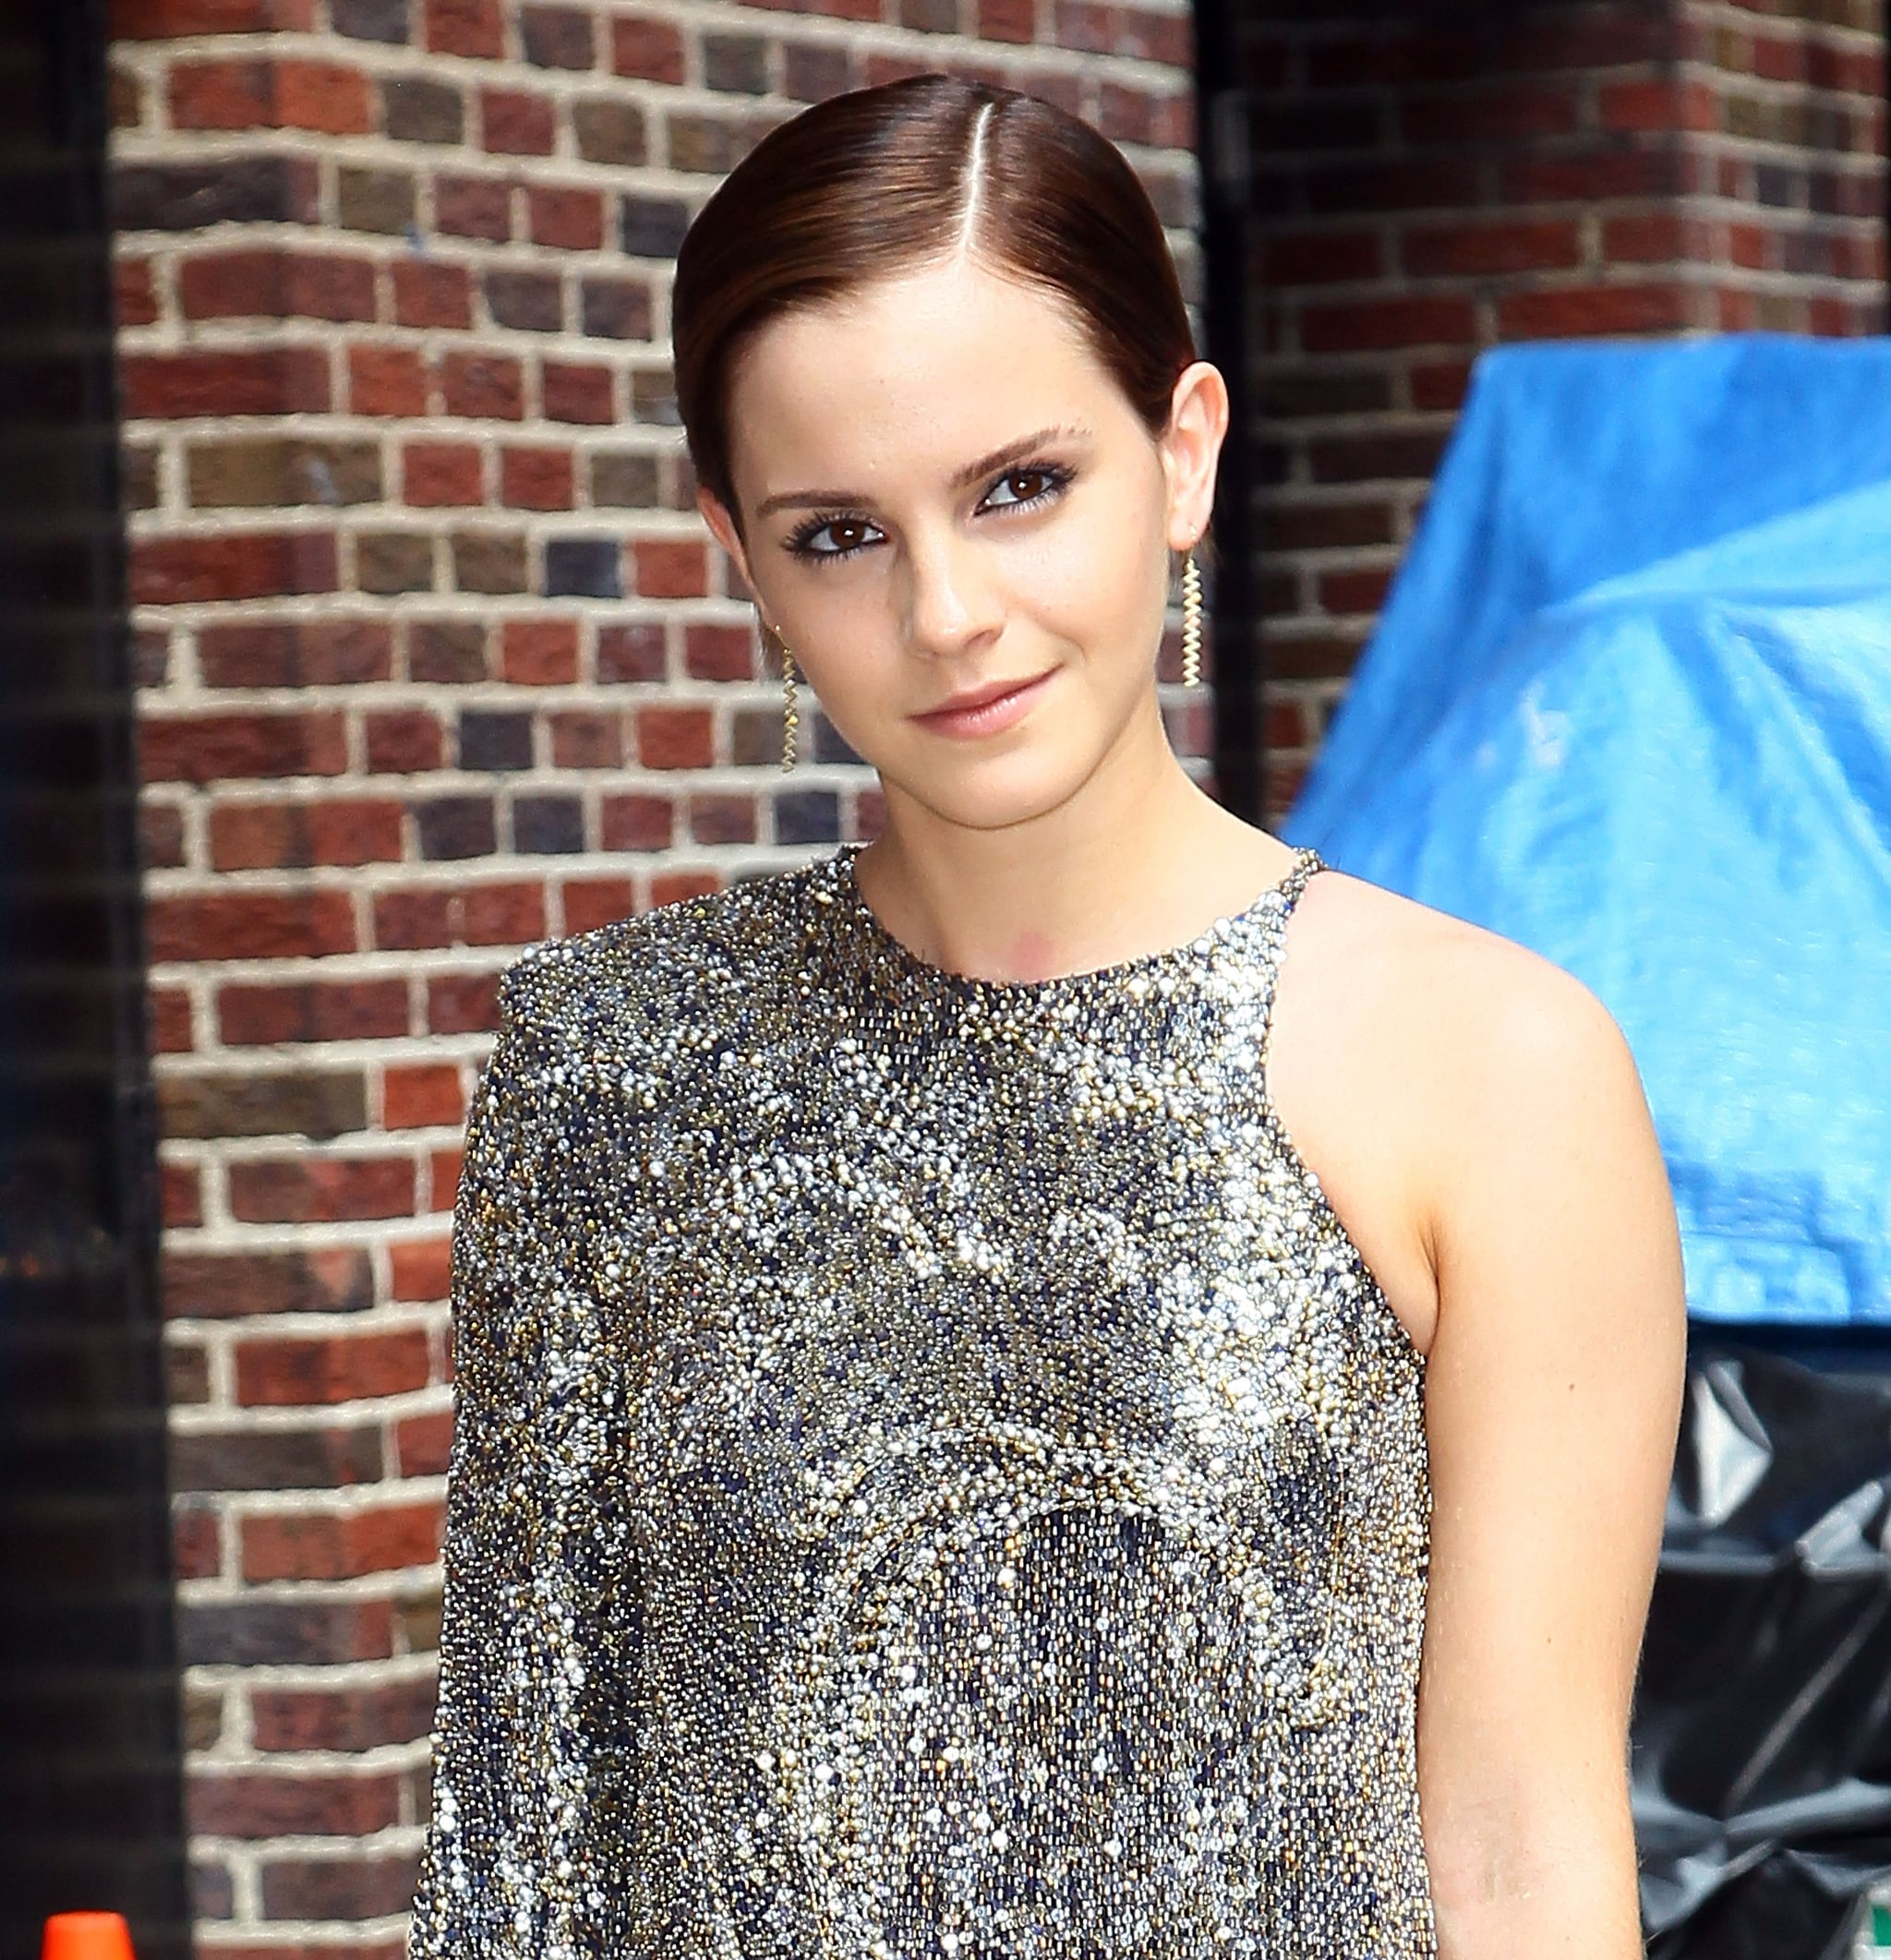 Remember Emma Watson with a pixie cut? The actress liked to style her cut close to her head.